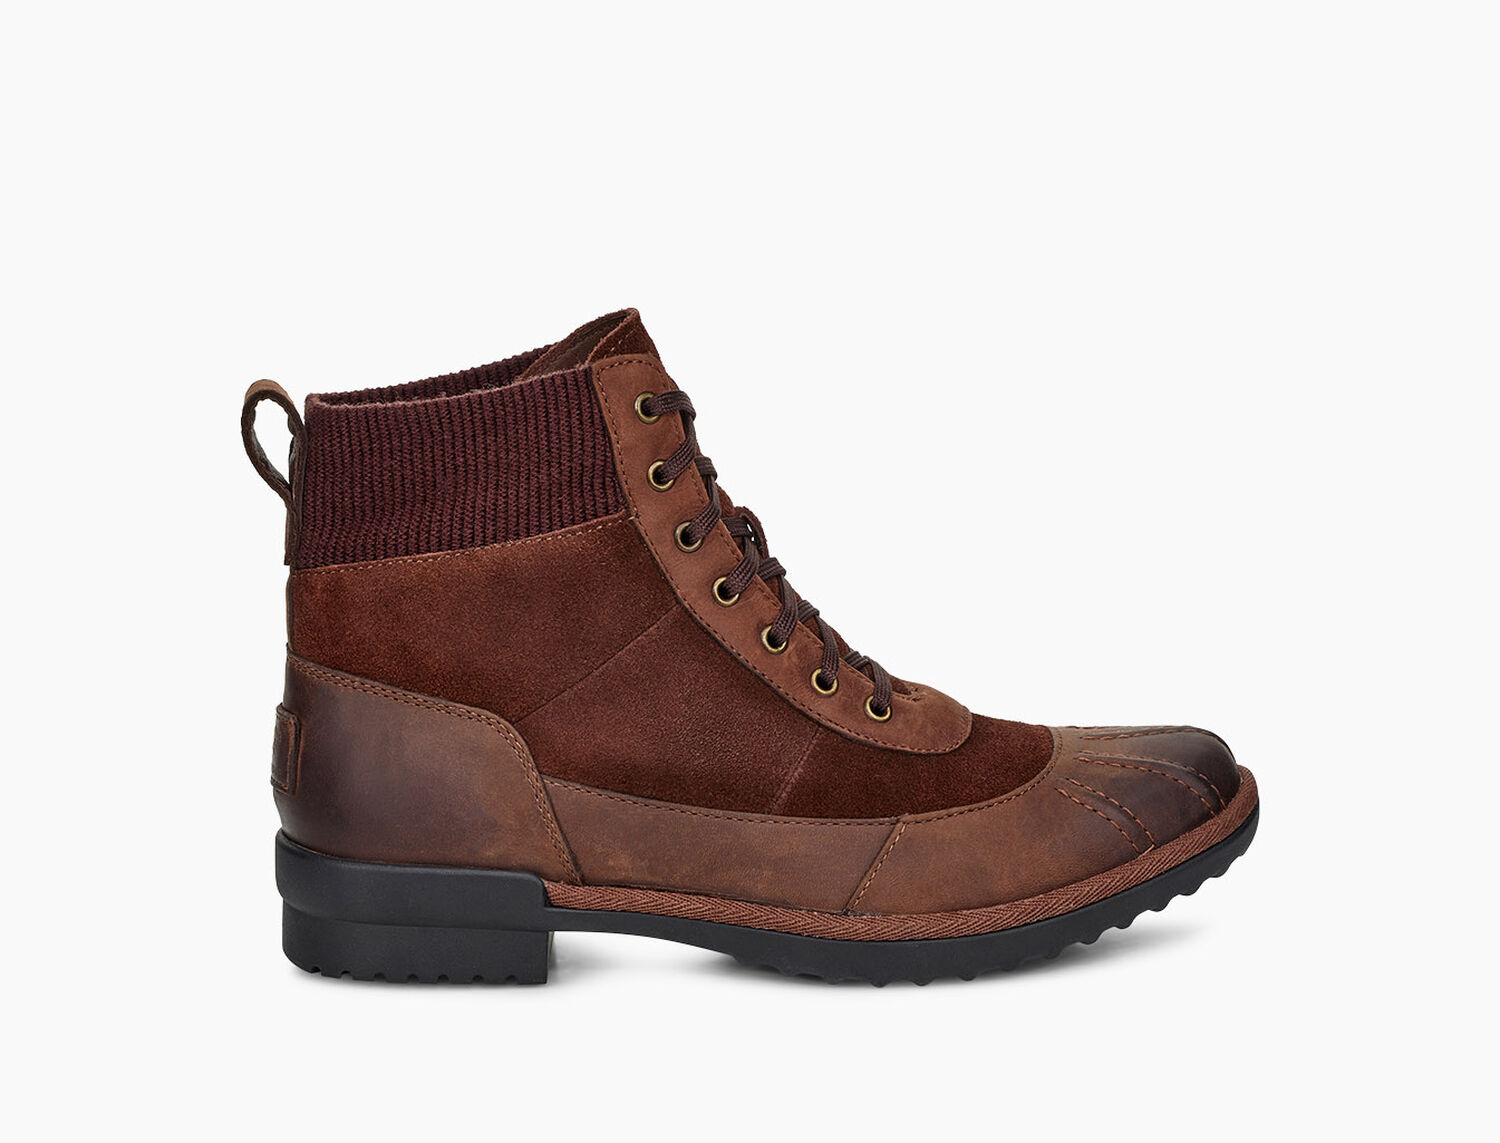 b34ec2b2ff6 Women's Share this product Cayli Boot